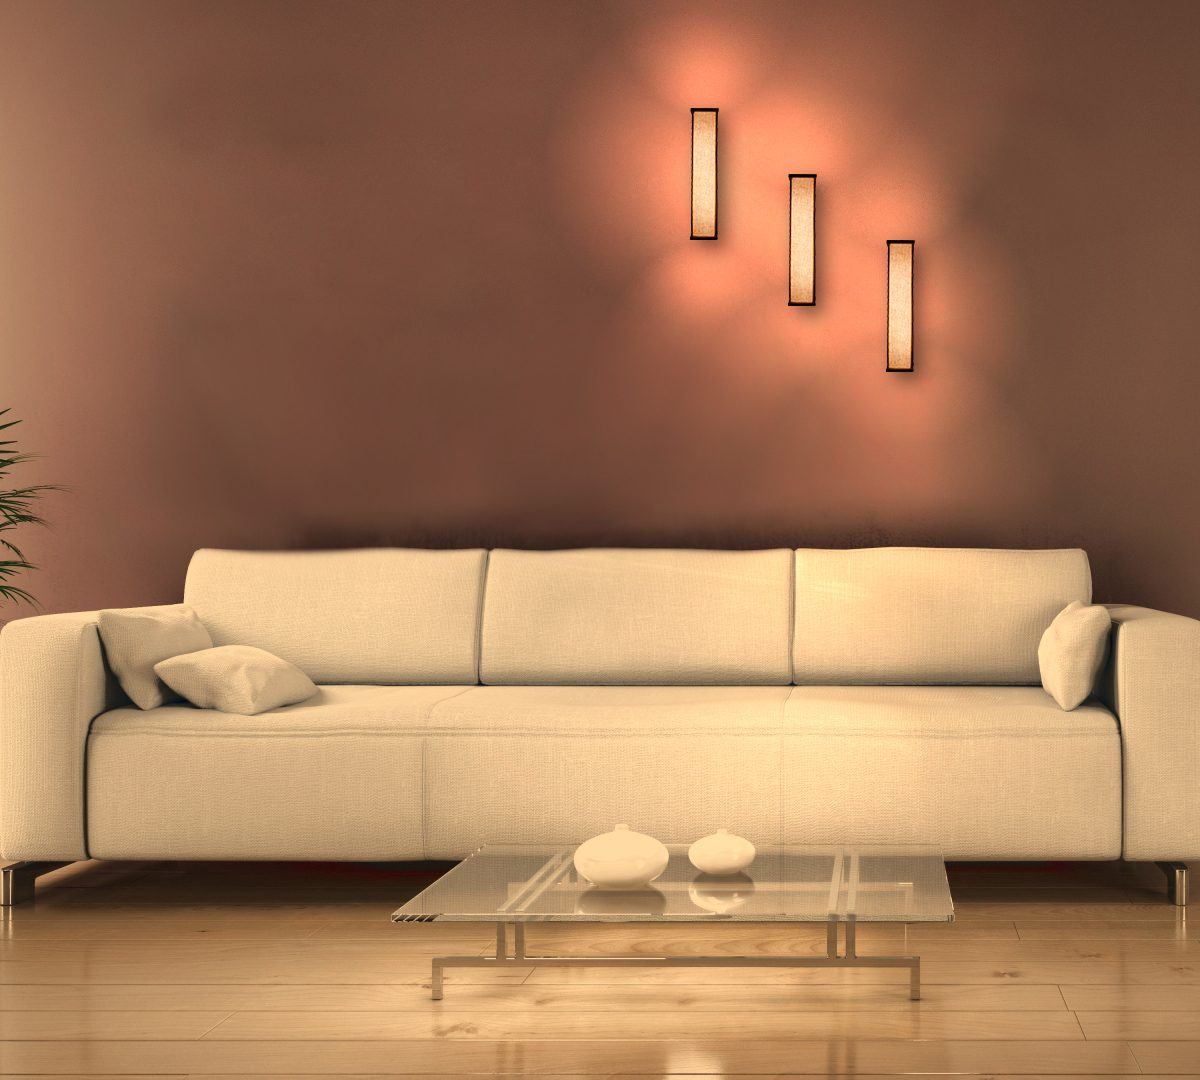 Buy Best Home Decor Products Like Lighting, Pots, Wall Art & Clocks